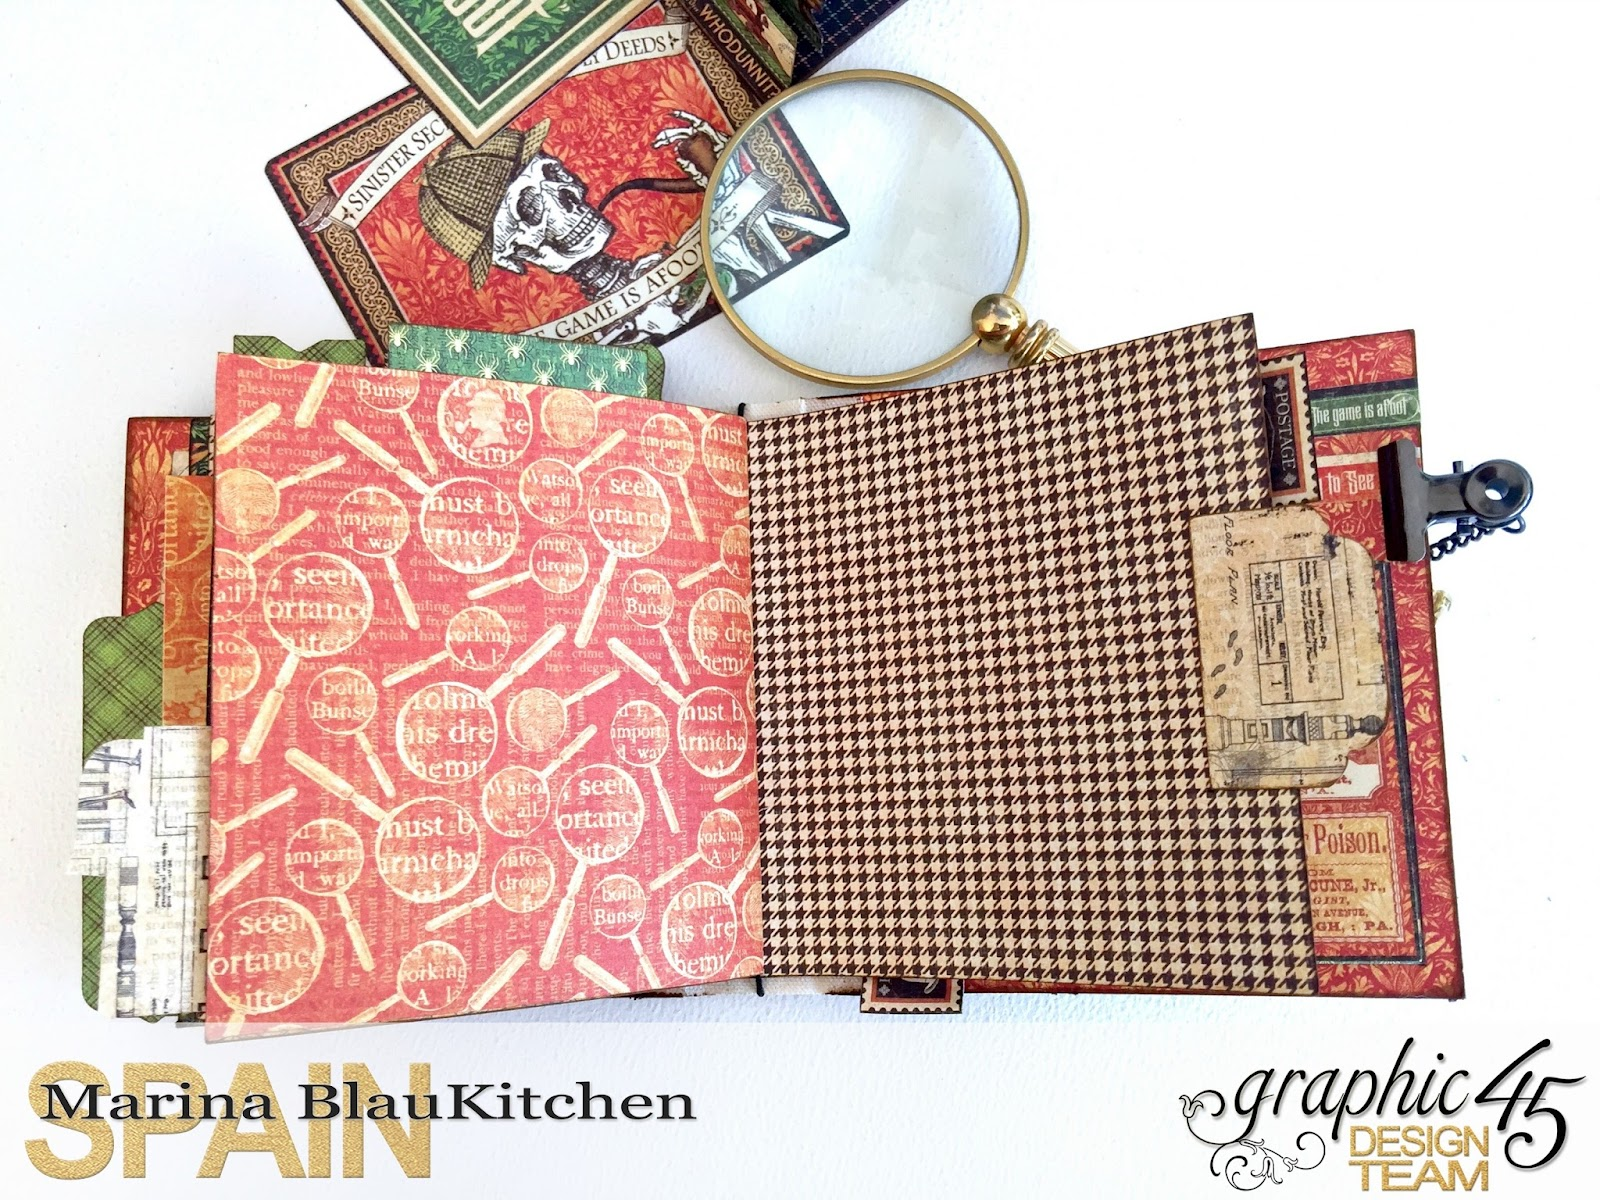 Stand and Mini Album Master Detective by Marina Blaukitchen Product by Graphic 45 photo 23.jpg